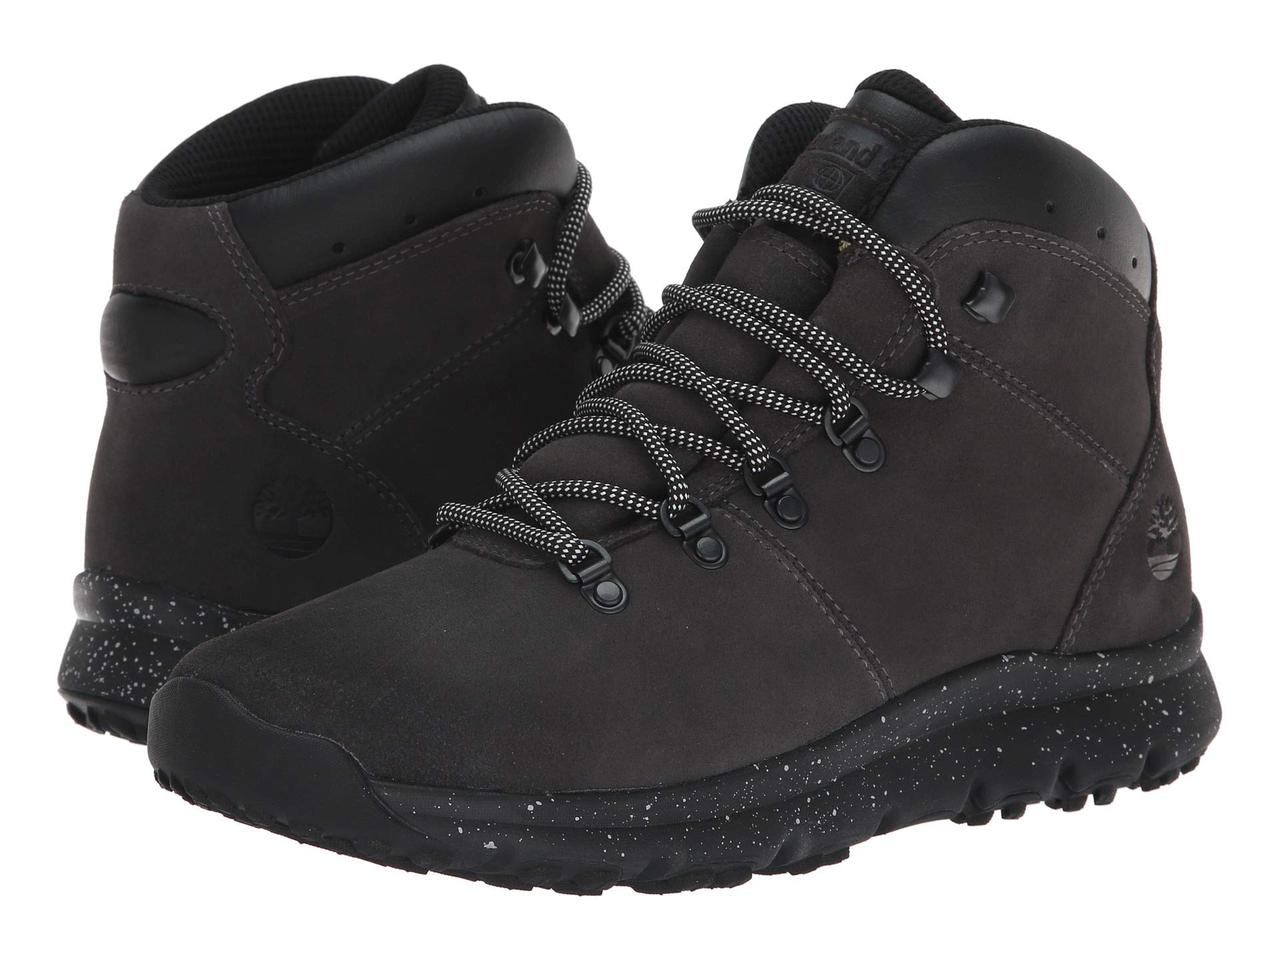 Ботинки Сапоги (Оригинал) Timberland World Hiker Mid Dark Grey Suede ... 088d7be3e6a